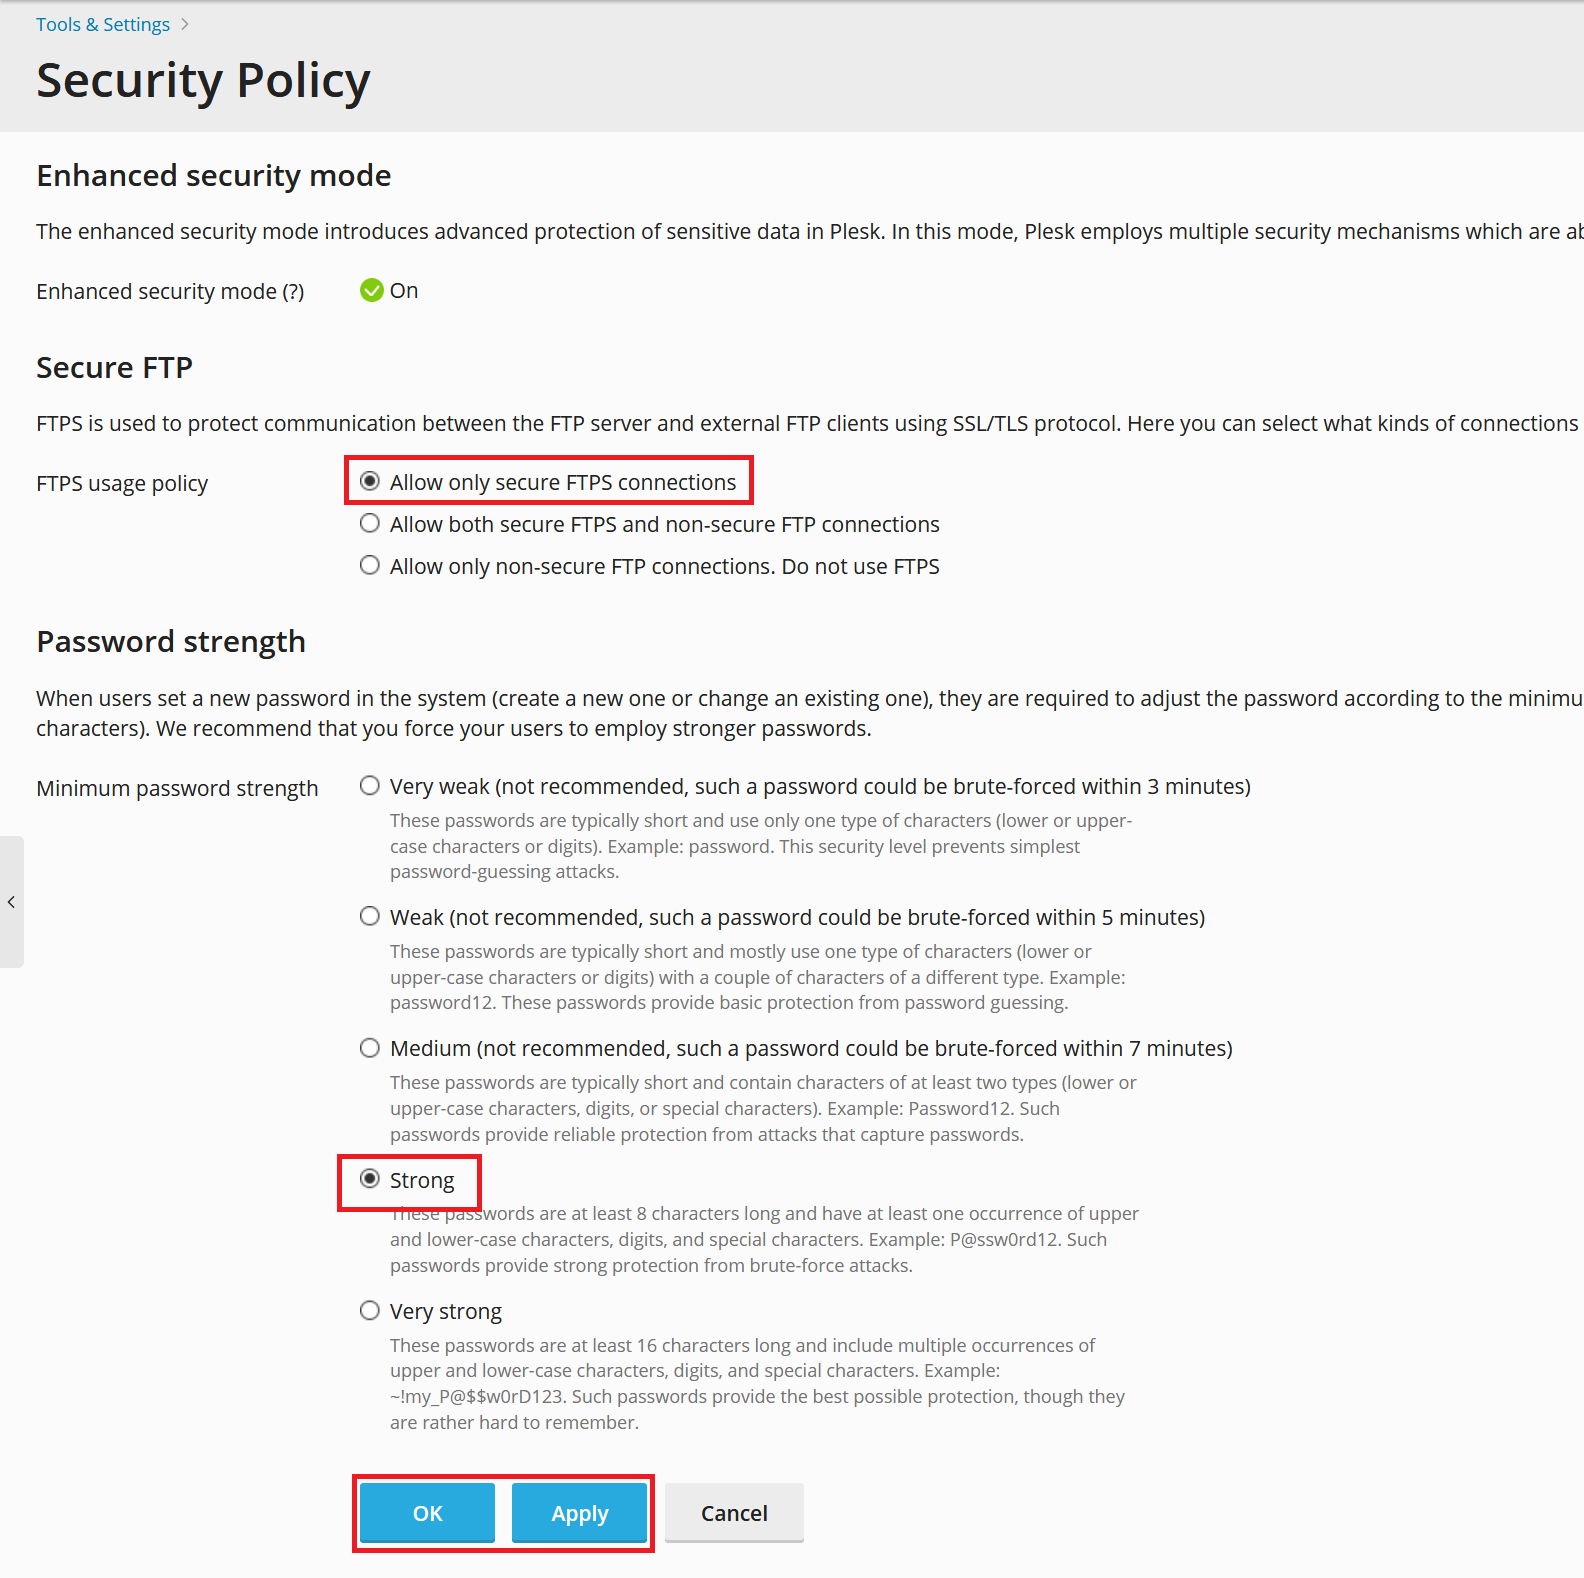 plesk security policy settings